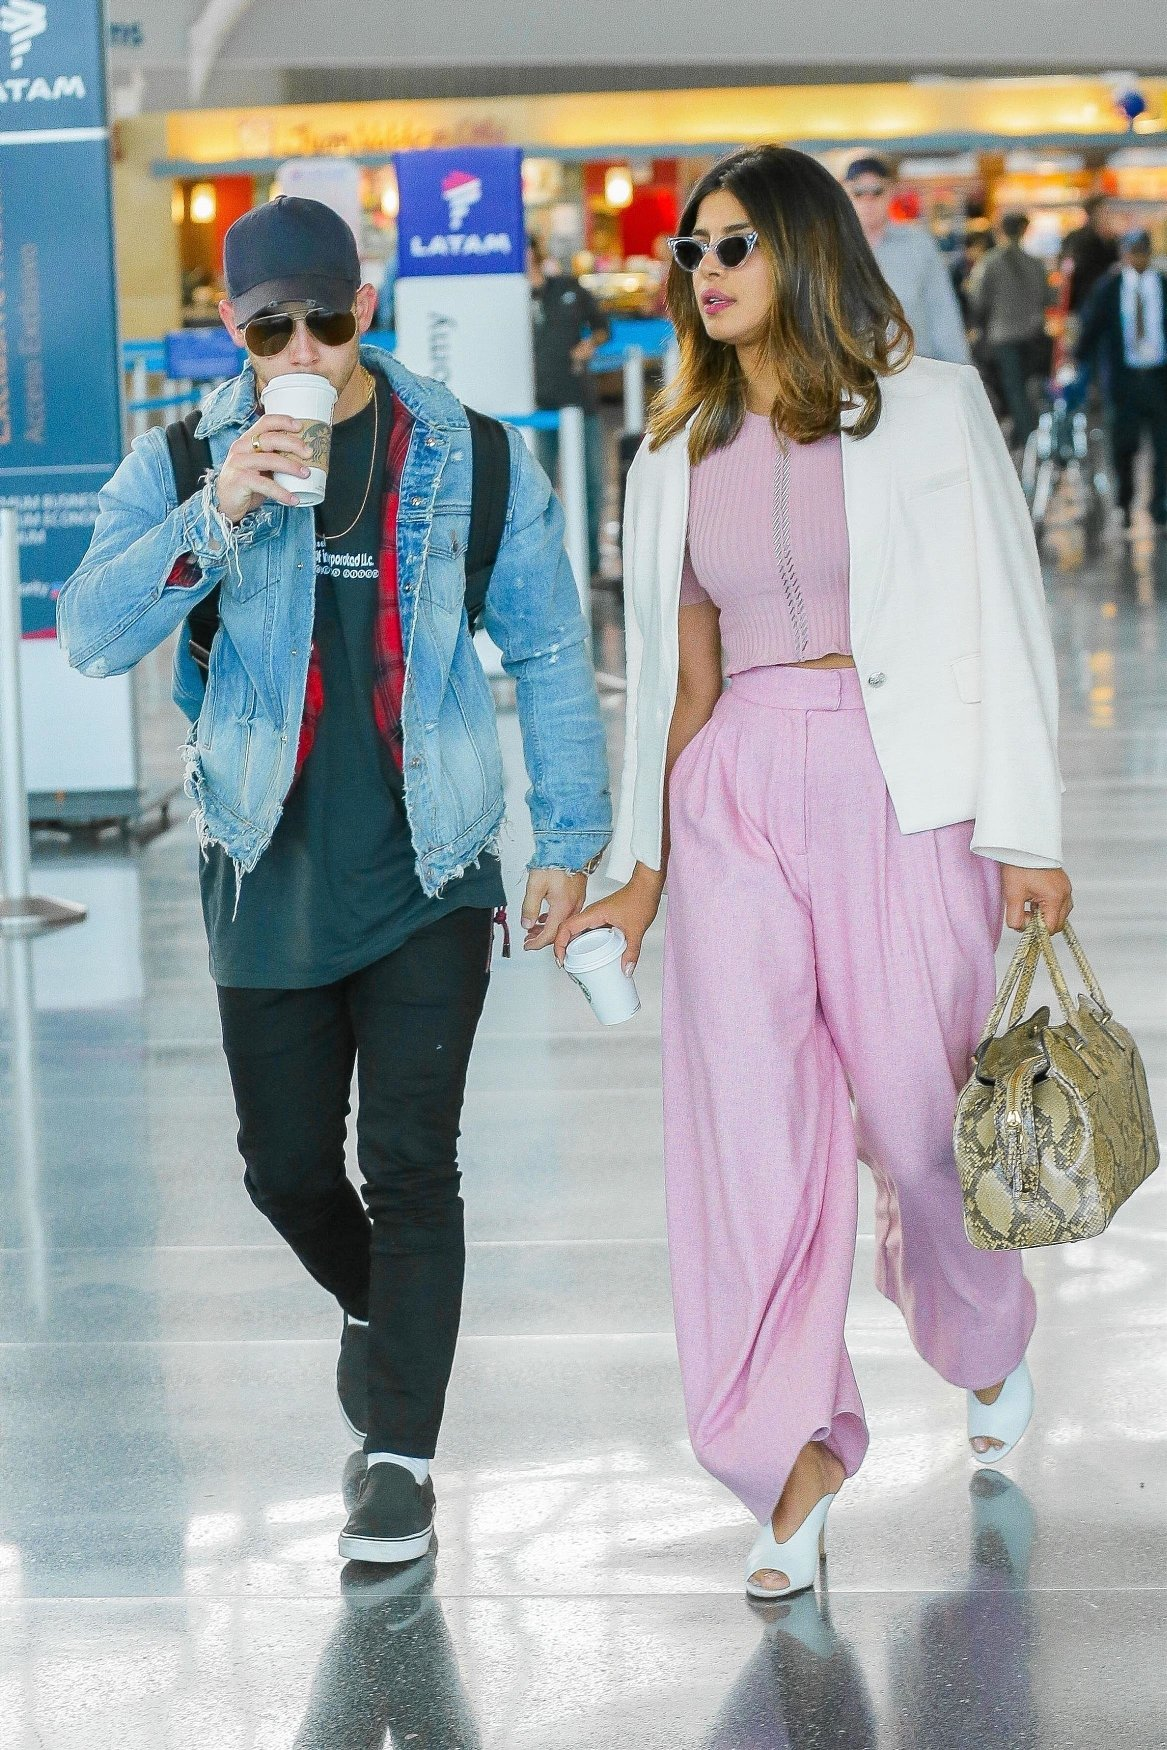 New York, NY  - Actress Priyanka Chopra shows off her style in a beautiful pink and white ensemble while singer Nick Jonas goes for the casual look while touching down at JFK Airport in New York City. The hot new couple were both enjoying some coffee during their arrival.  Pictured: Nick Jonas, Priyanka Chopra  BACKGRID USA 8 JUNE 2018, Image: 374255878, License: Rights-managed, Restrictions: , Model Release: no, Credit line: Profimedia, AKM-GSI